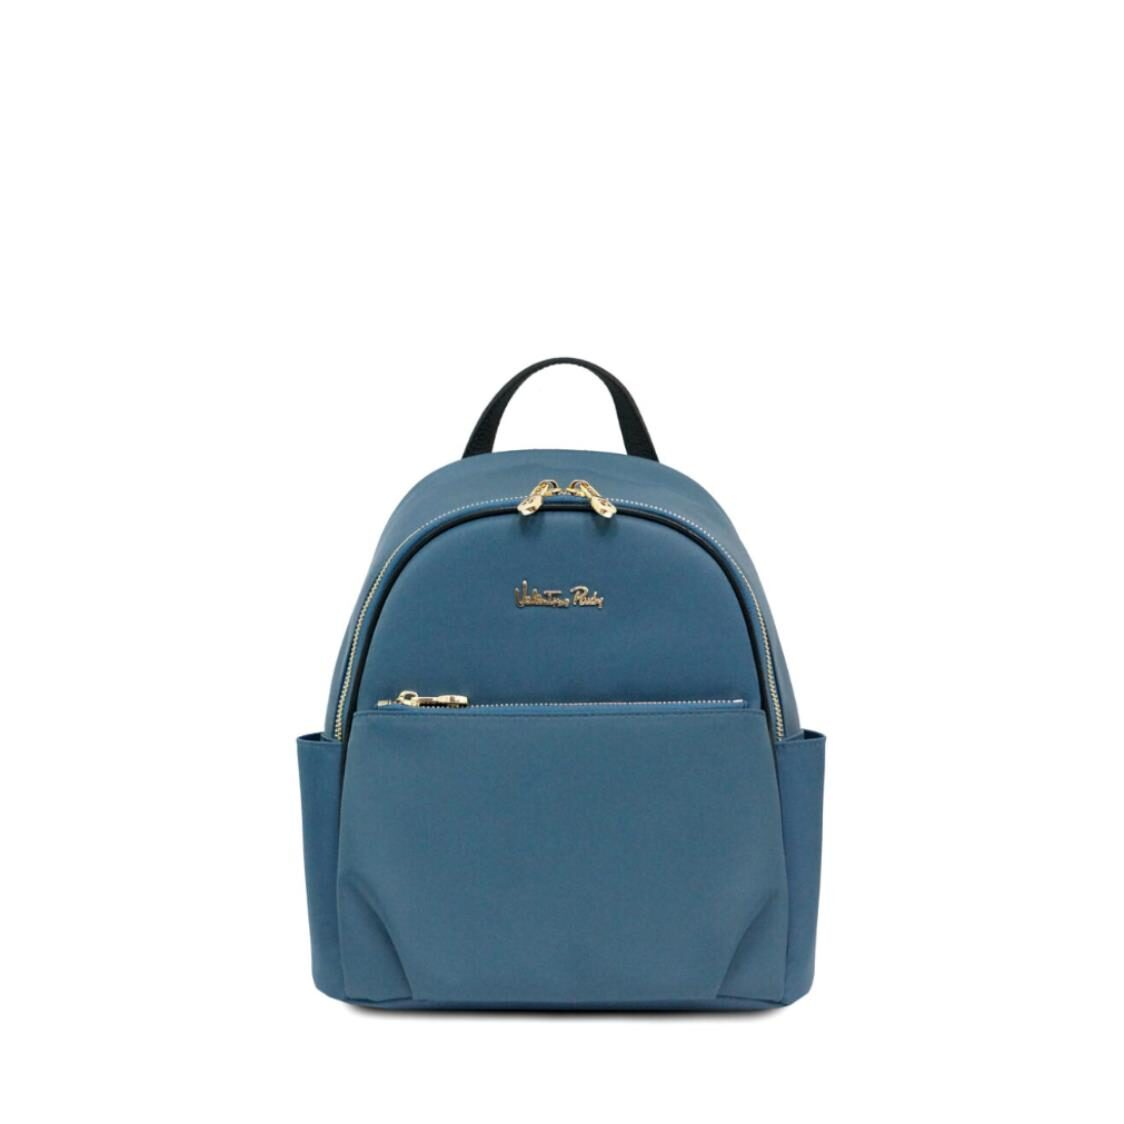 Valentino Rudy Nylon Leather trimmed Backpack